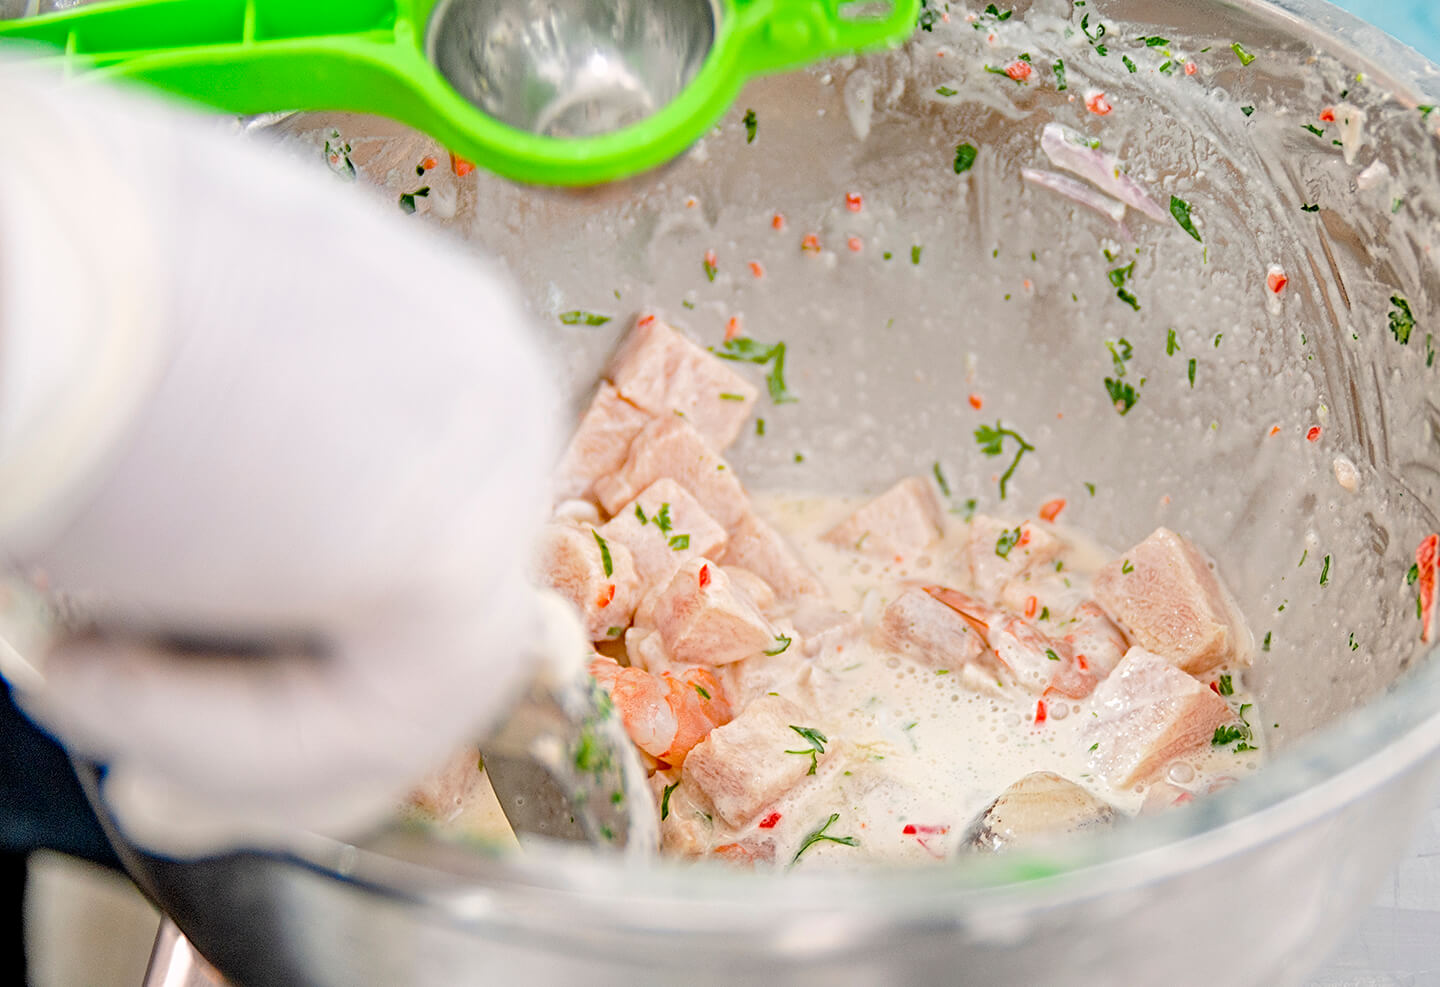 Ceviche being freshly made and seasoned in a large glass bowl.